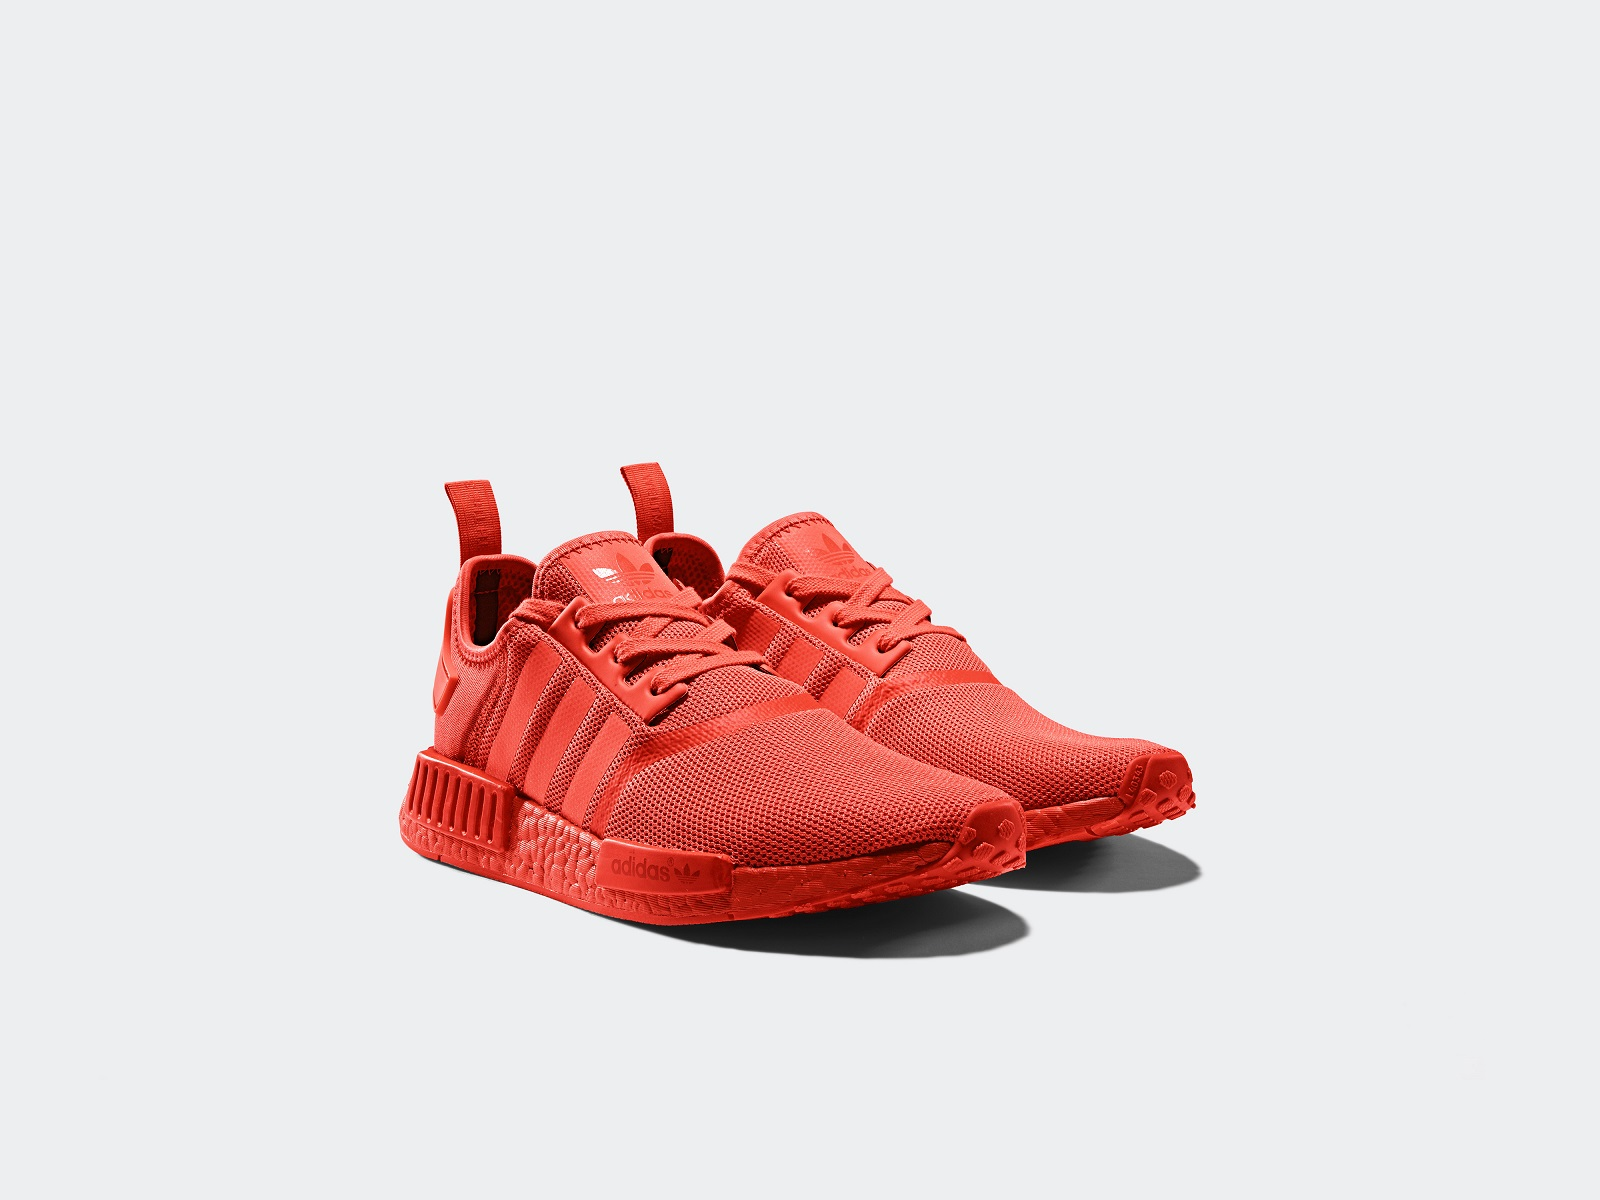 Adidas NMD Boost R1 Monochrome Pack in in in Triple schwarz, ROT and Weiß cd14ef